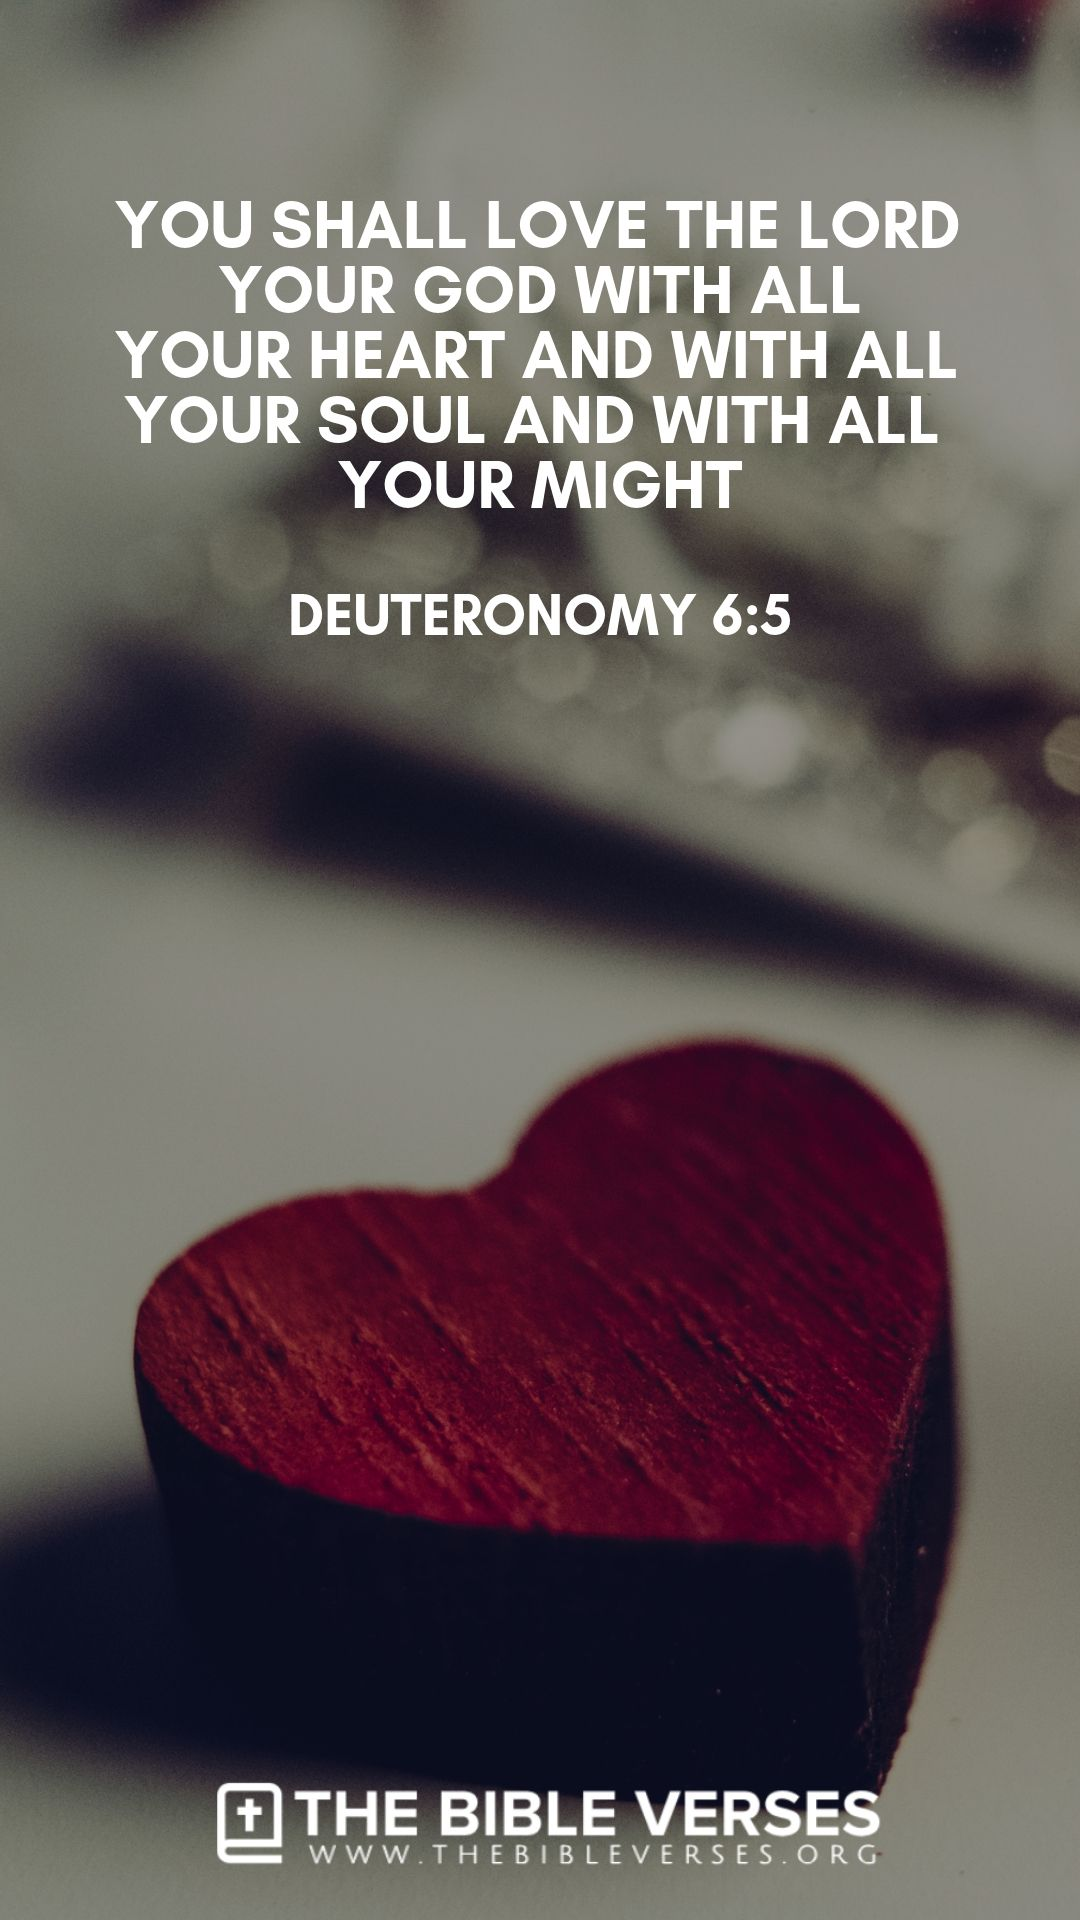 And thou shalt love the Lord thy God with all thine heart, and with all thy soul, and with all thy might (Deuteronomy 6:5). #BibleVerses #BibleQuotes #ScriptureQuotes #GodQuotes